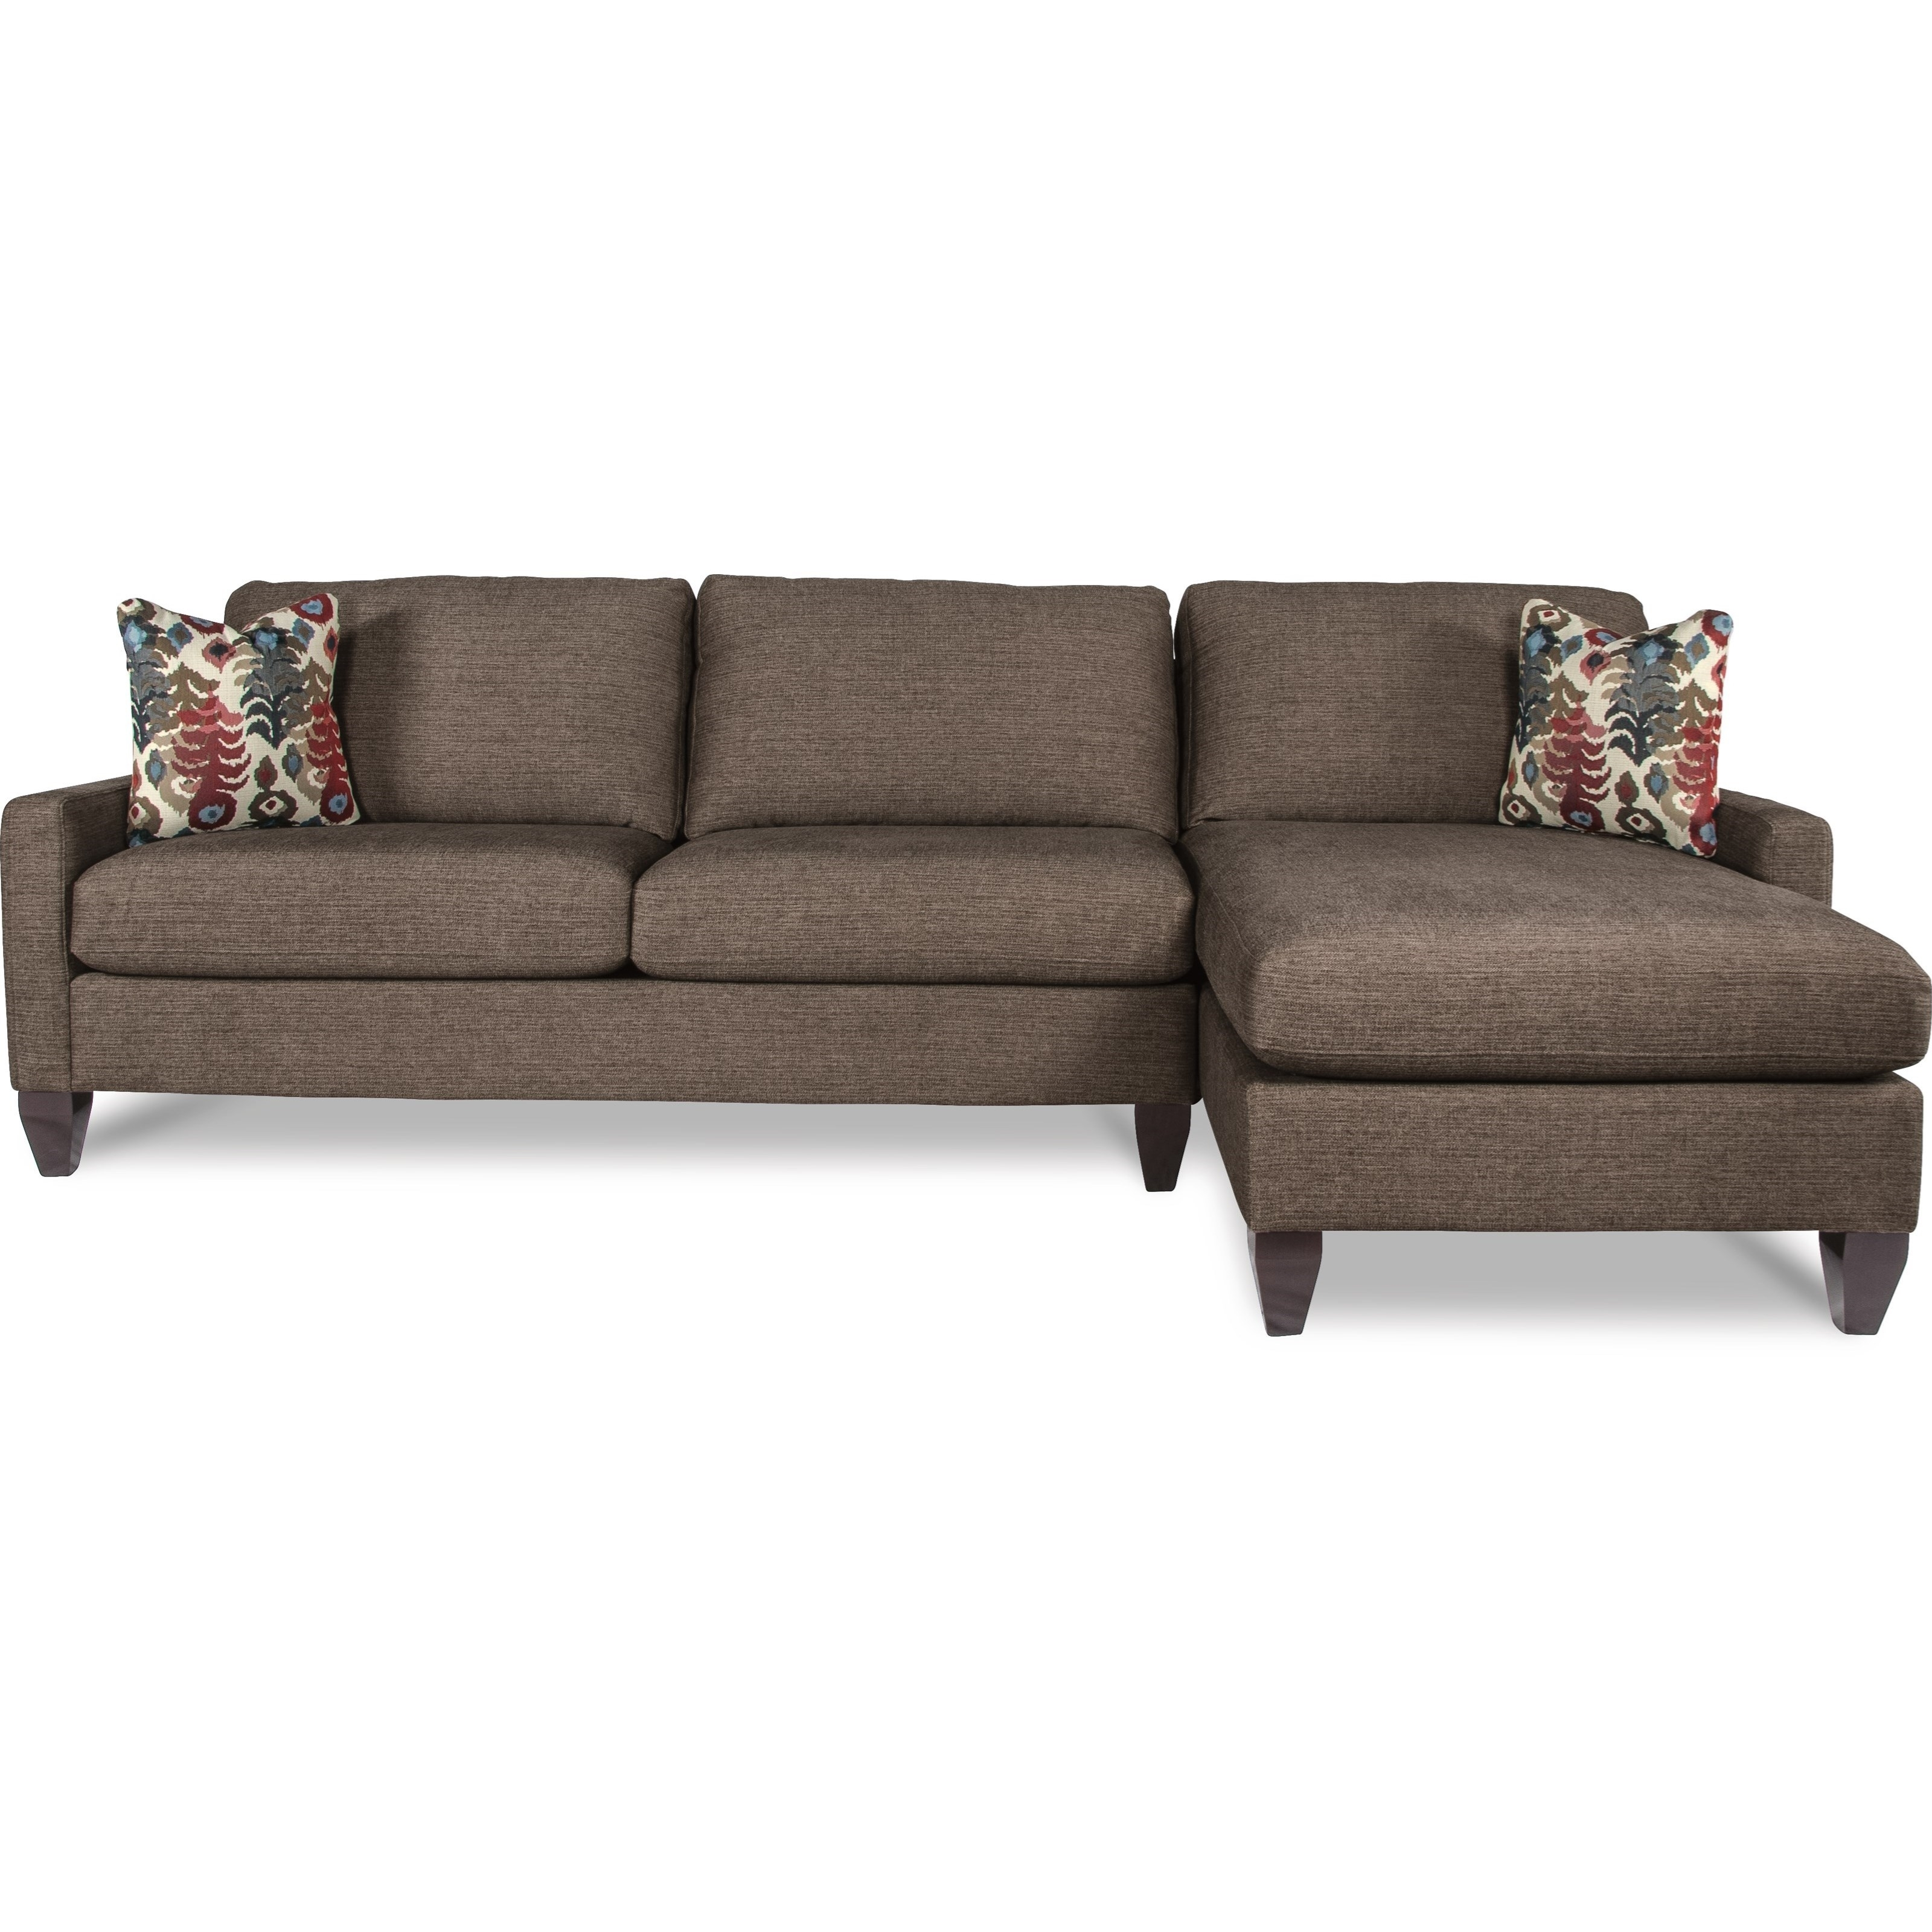 Raf Chaise Laf Sofa | Baci Living Room Within Mcdade Graphite 2 Piece Sectionals With Raf Chaise (Image 19 of 25)